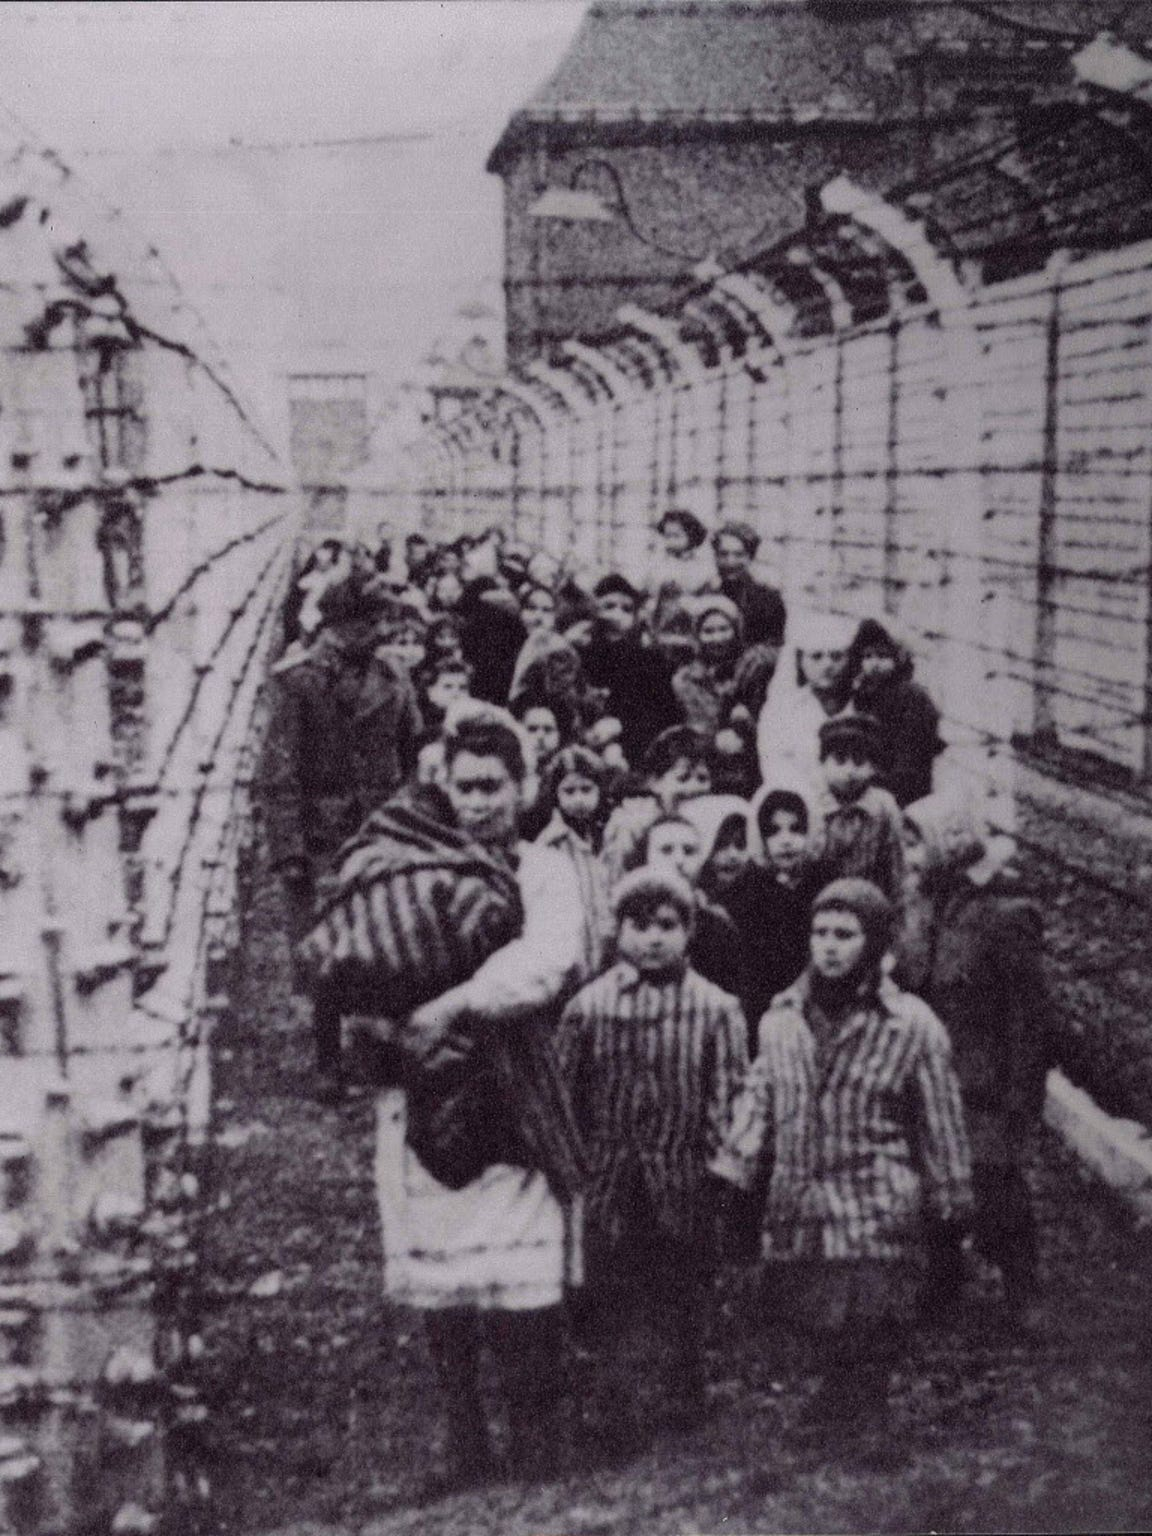 Holocaust survivors liberated from Auschwitz concentration camps on Jan. 27, 1945.